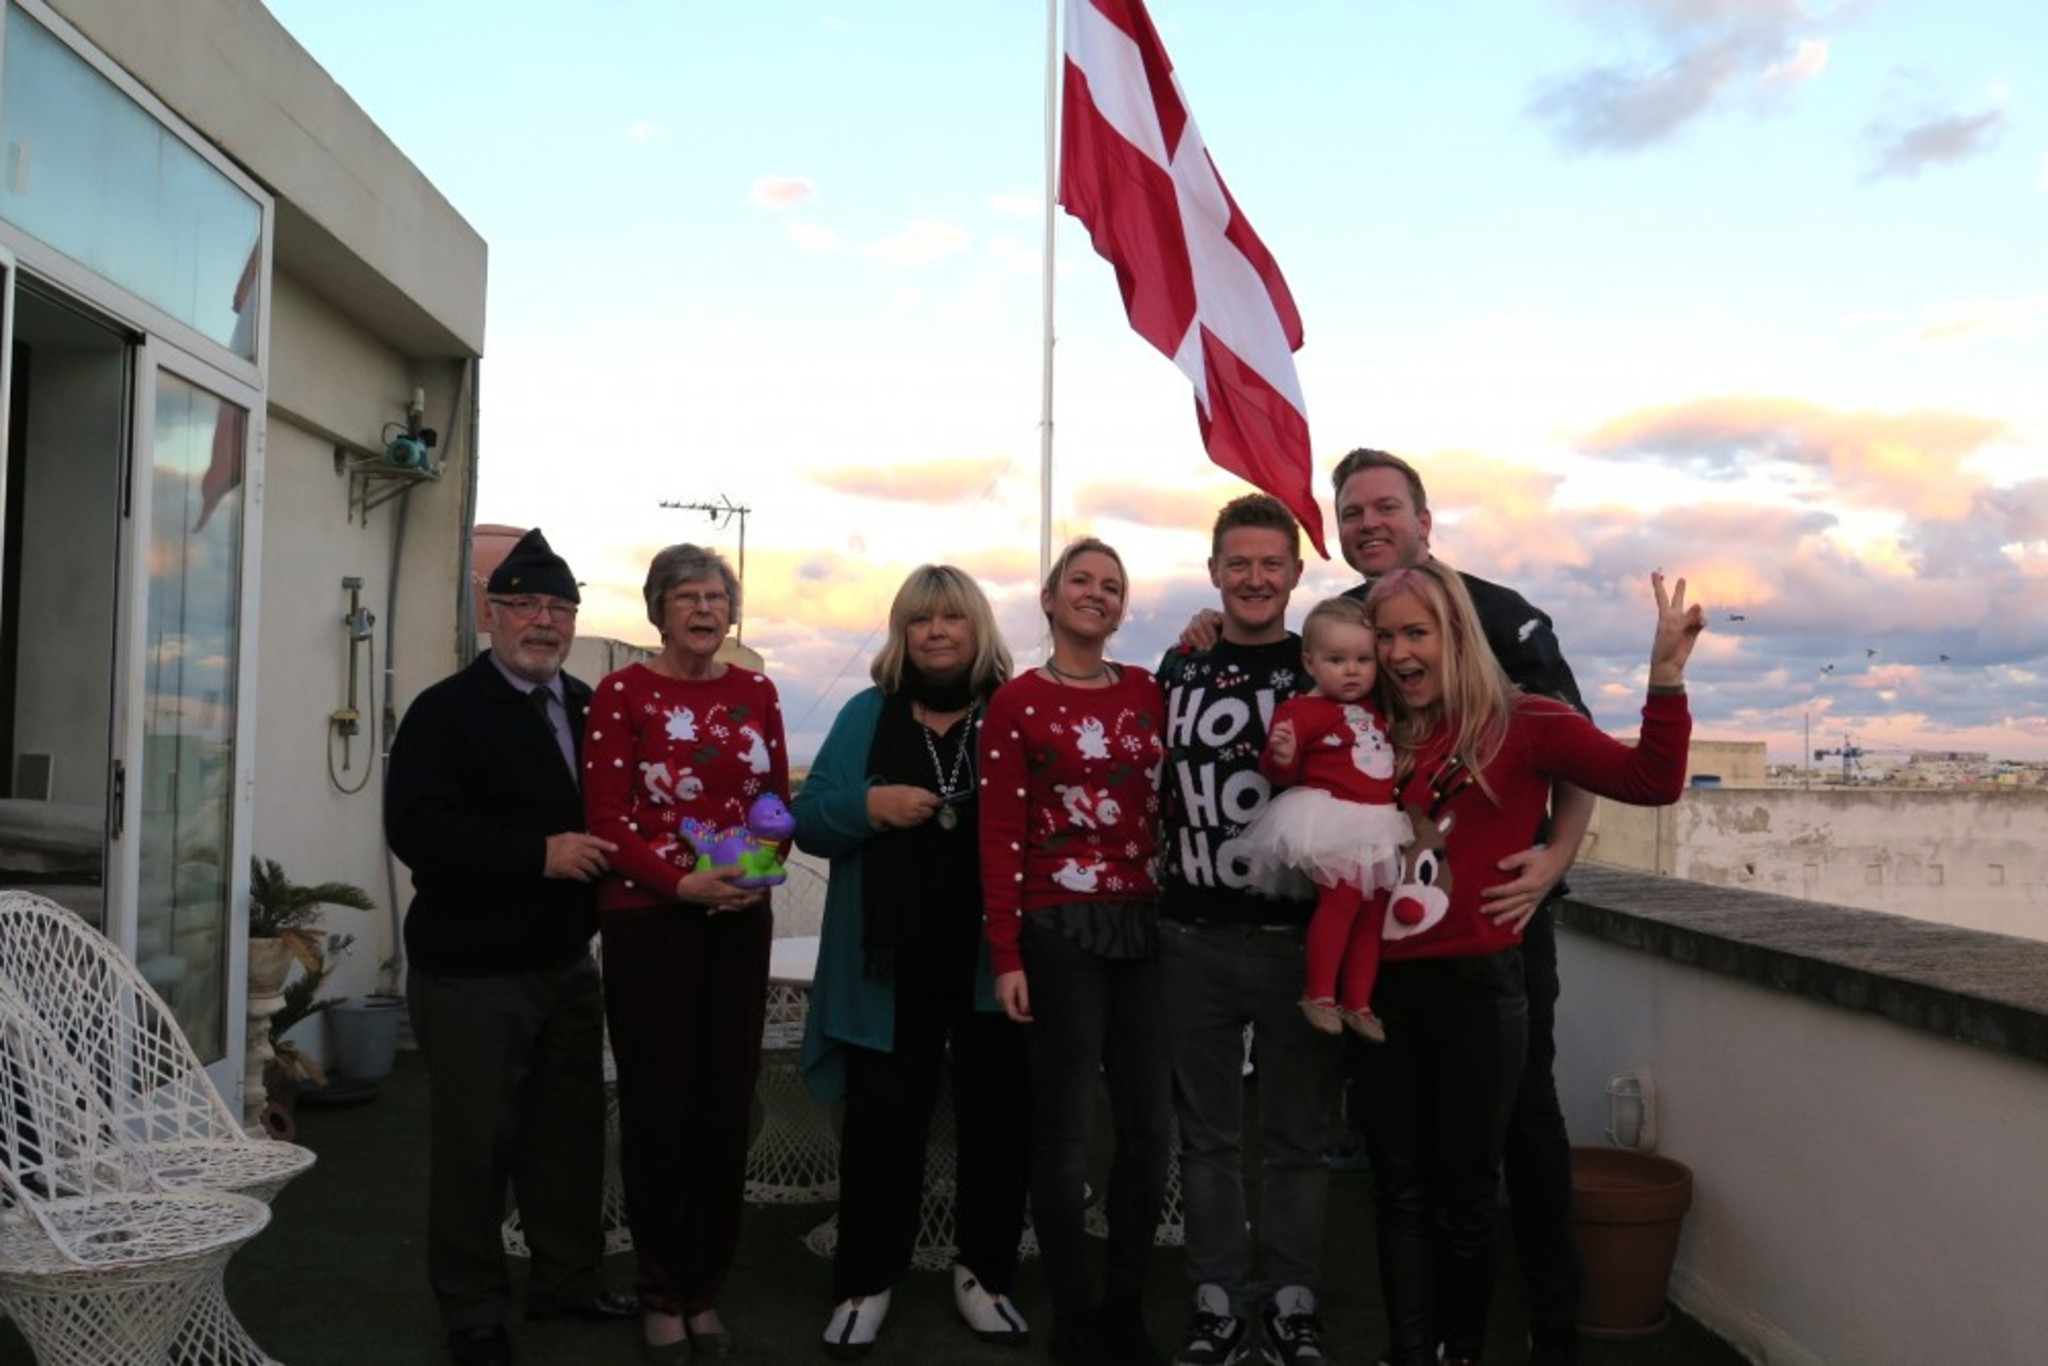 And All together with Malteese Flag in the background!!!!